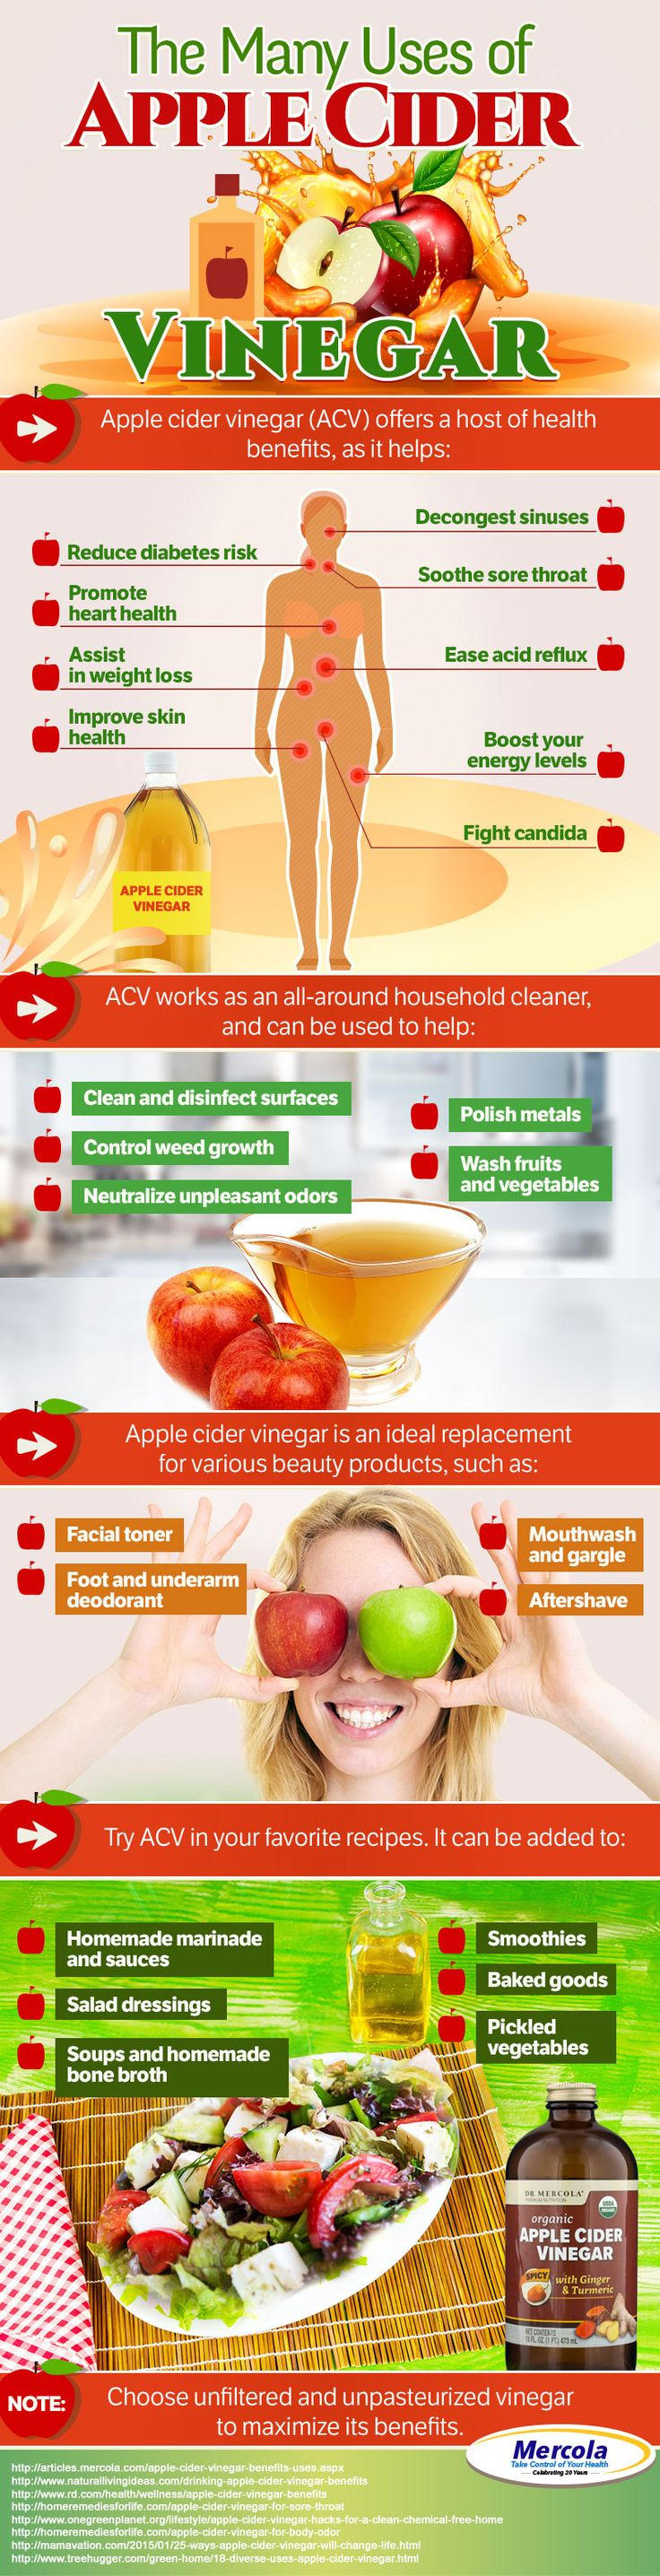 The health benefits and uses of apple cider vinegar (ACV) are now known to many, which is why this is becoming a staple in many people's kitchen pantries. http://articles.mercola.com/apple-cider-vinegar-benefits-uses.aspx http://articles.mercola.com/apple-cider-vinegar-benefits-uses.aspx